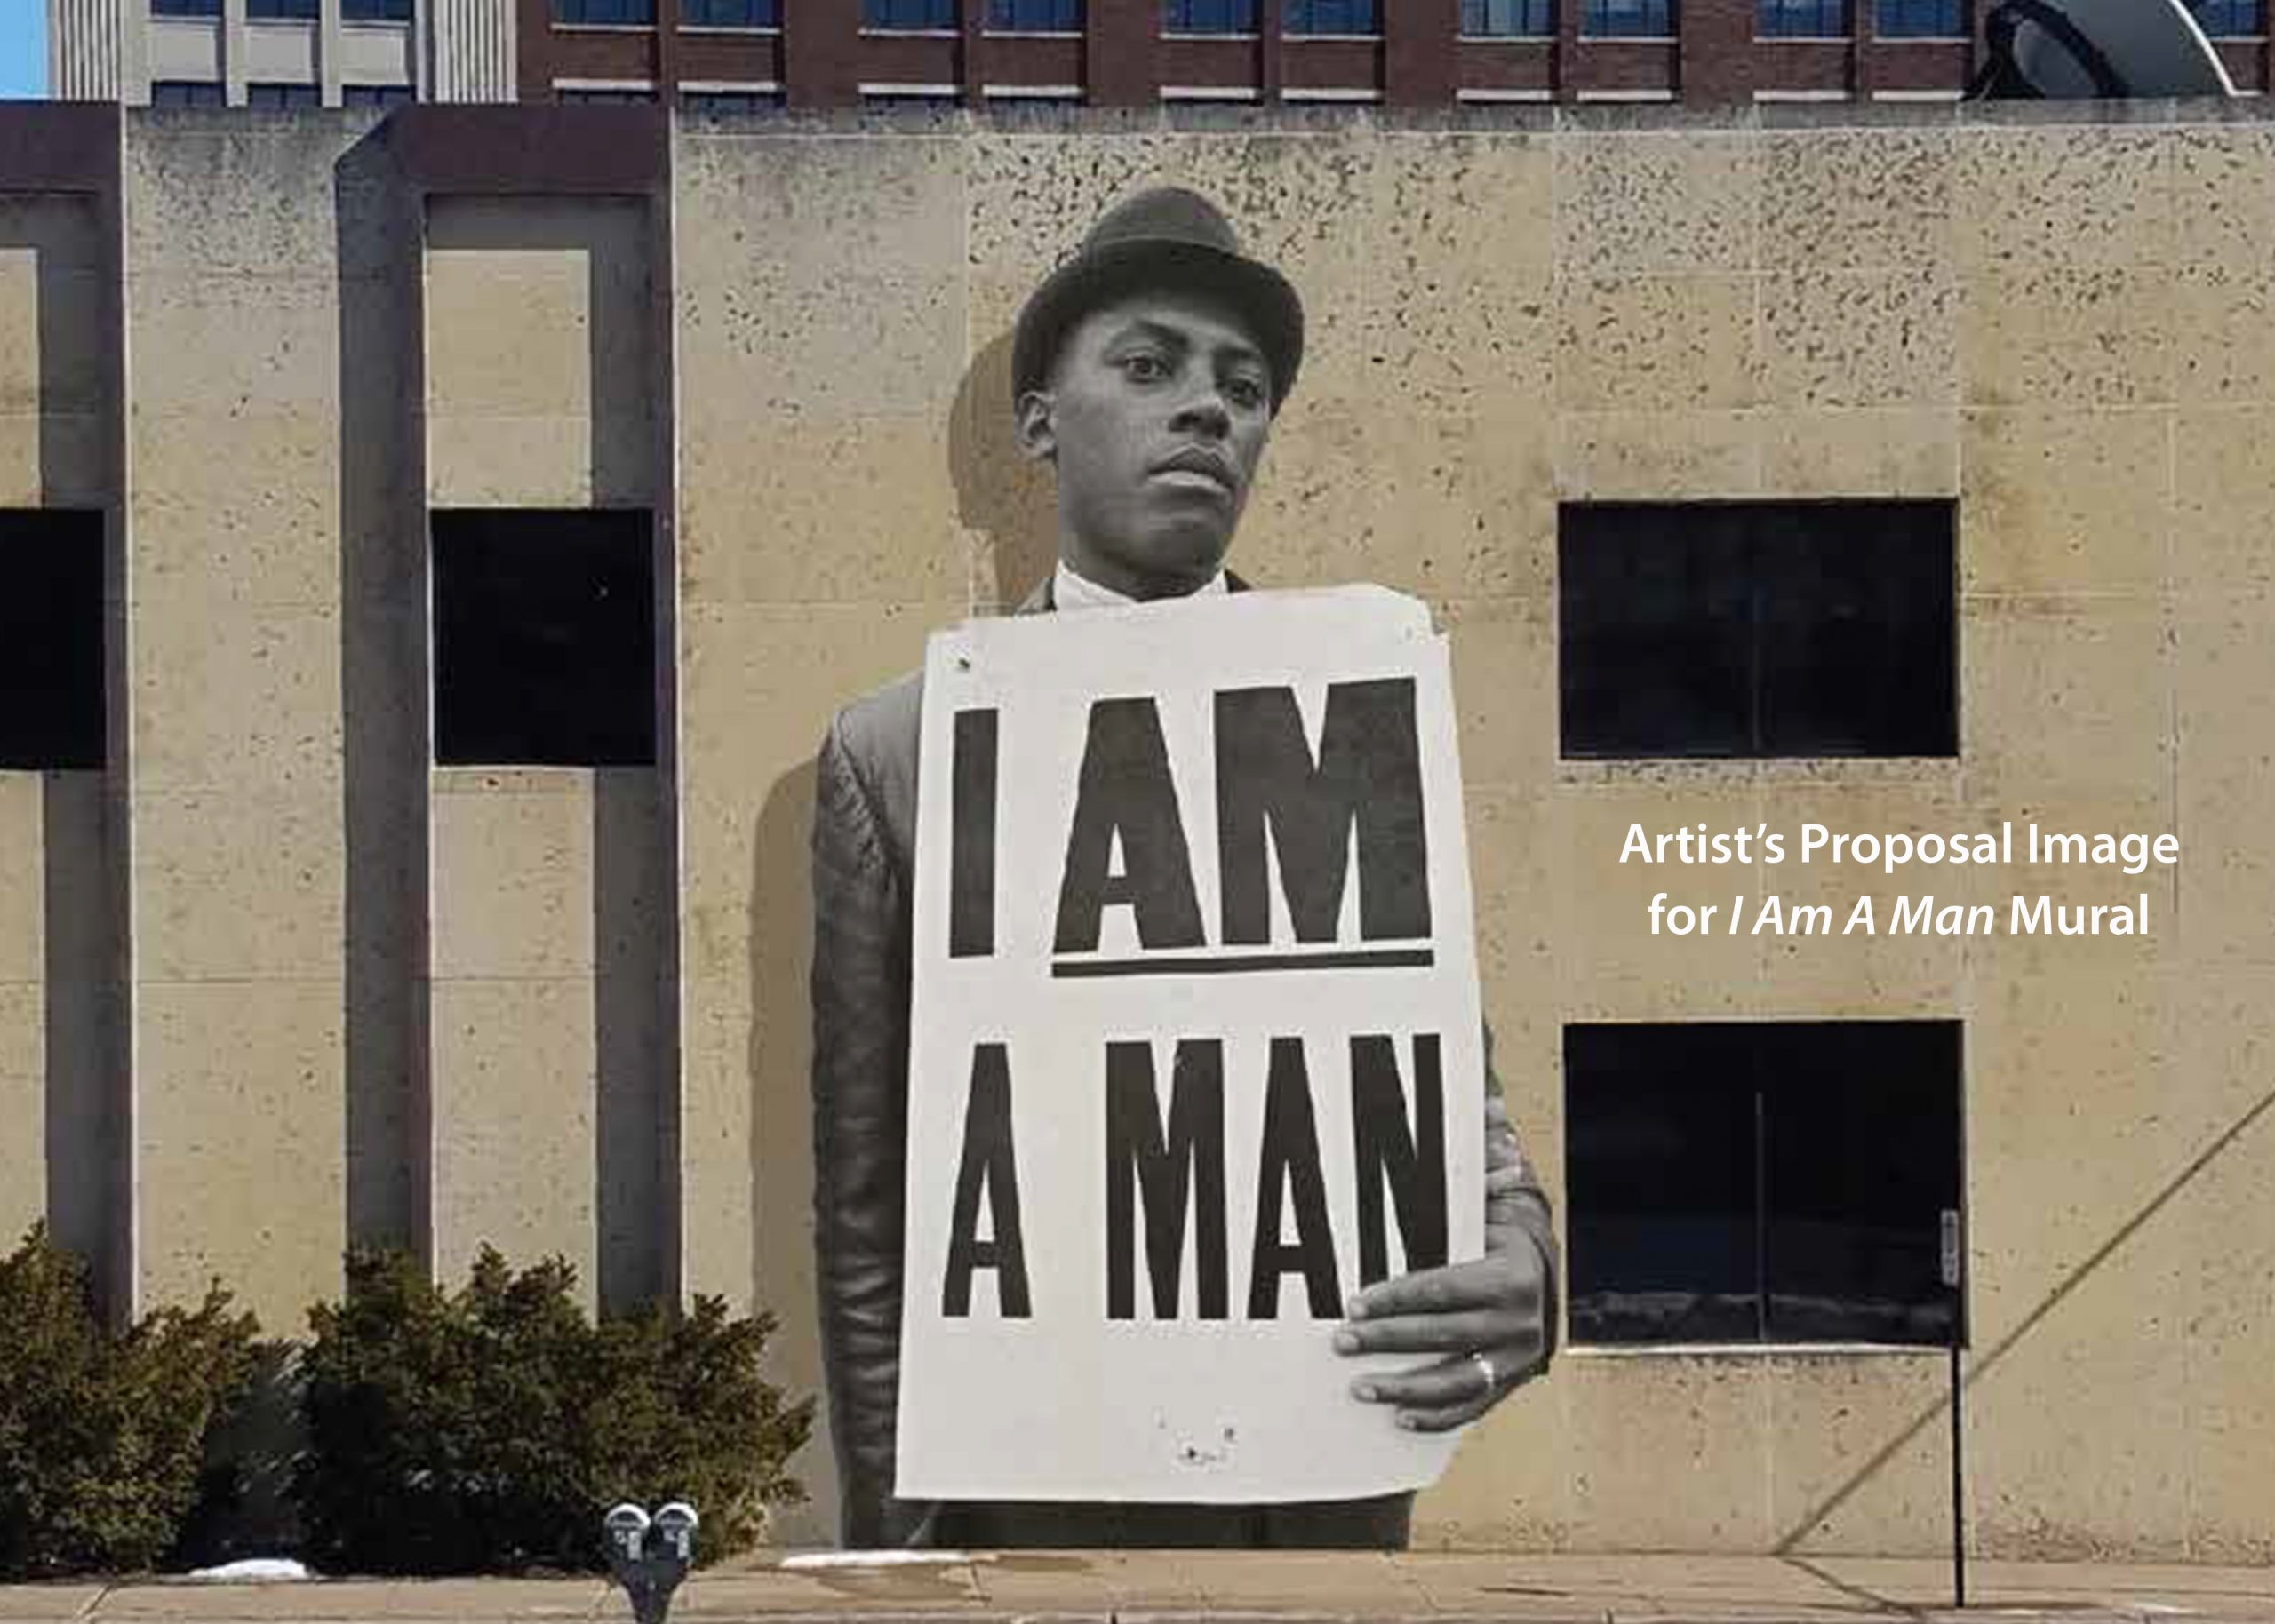 I Am A Man Mural Exhibition Artist Proposal